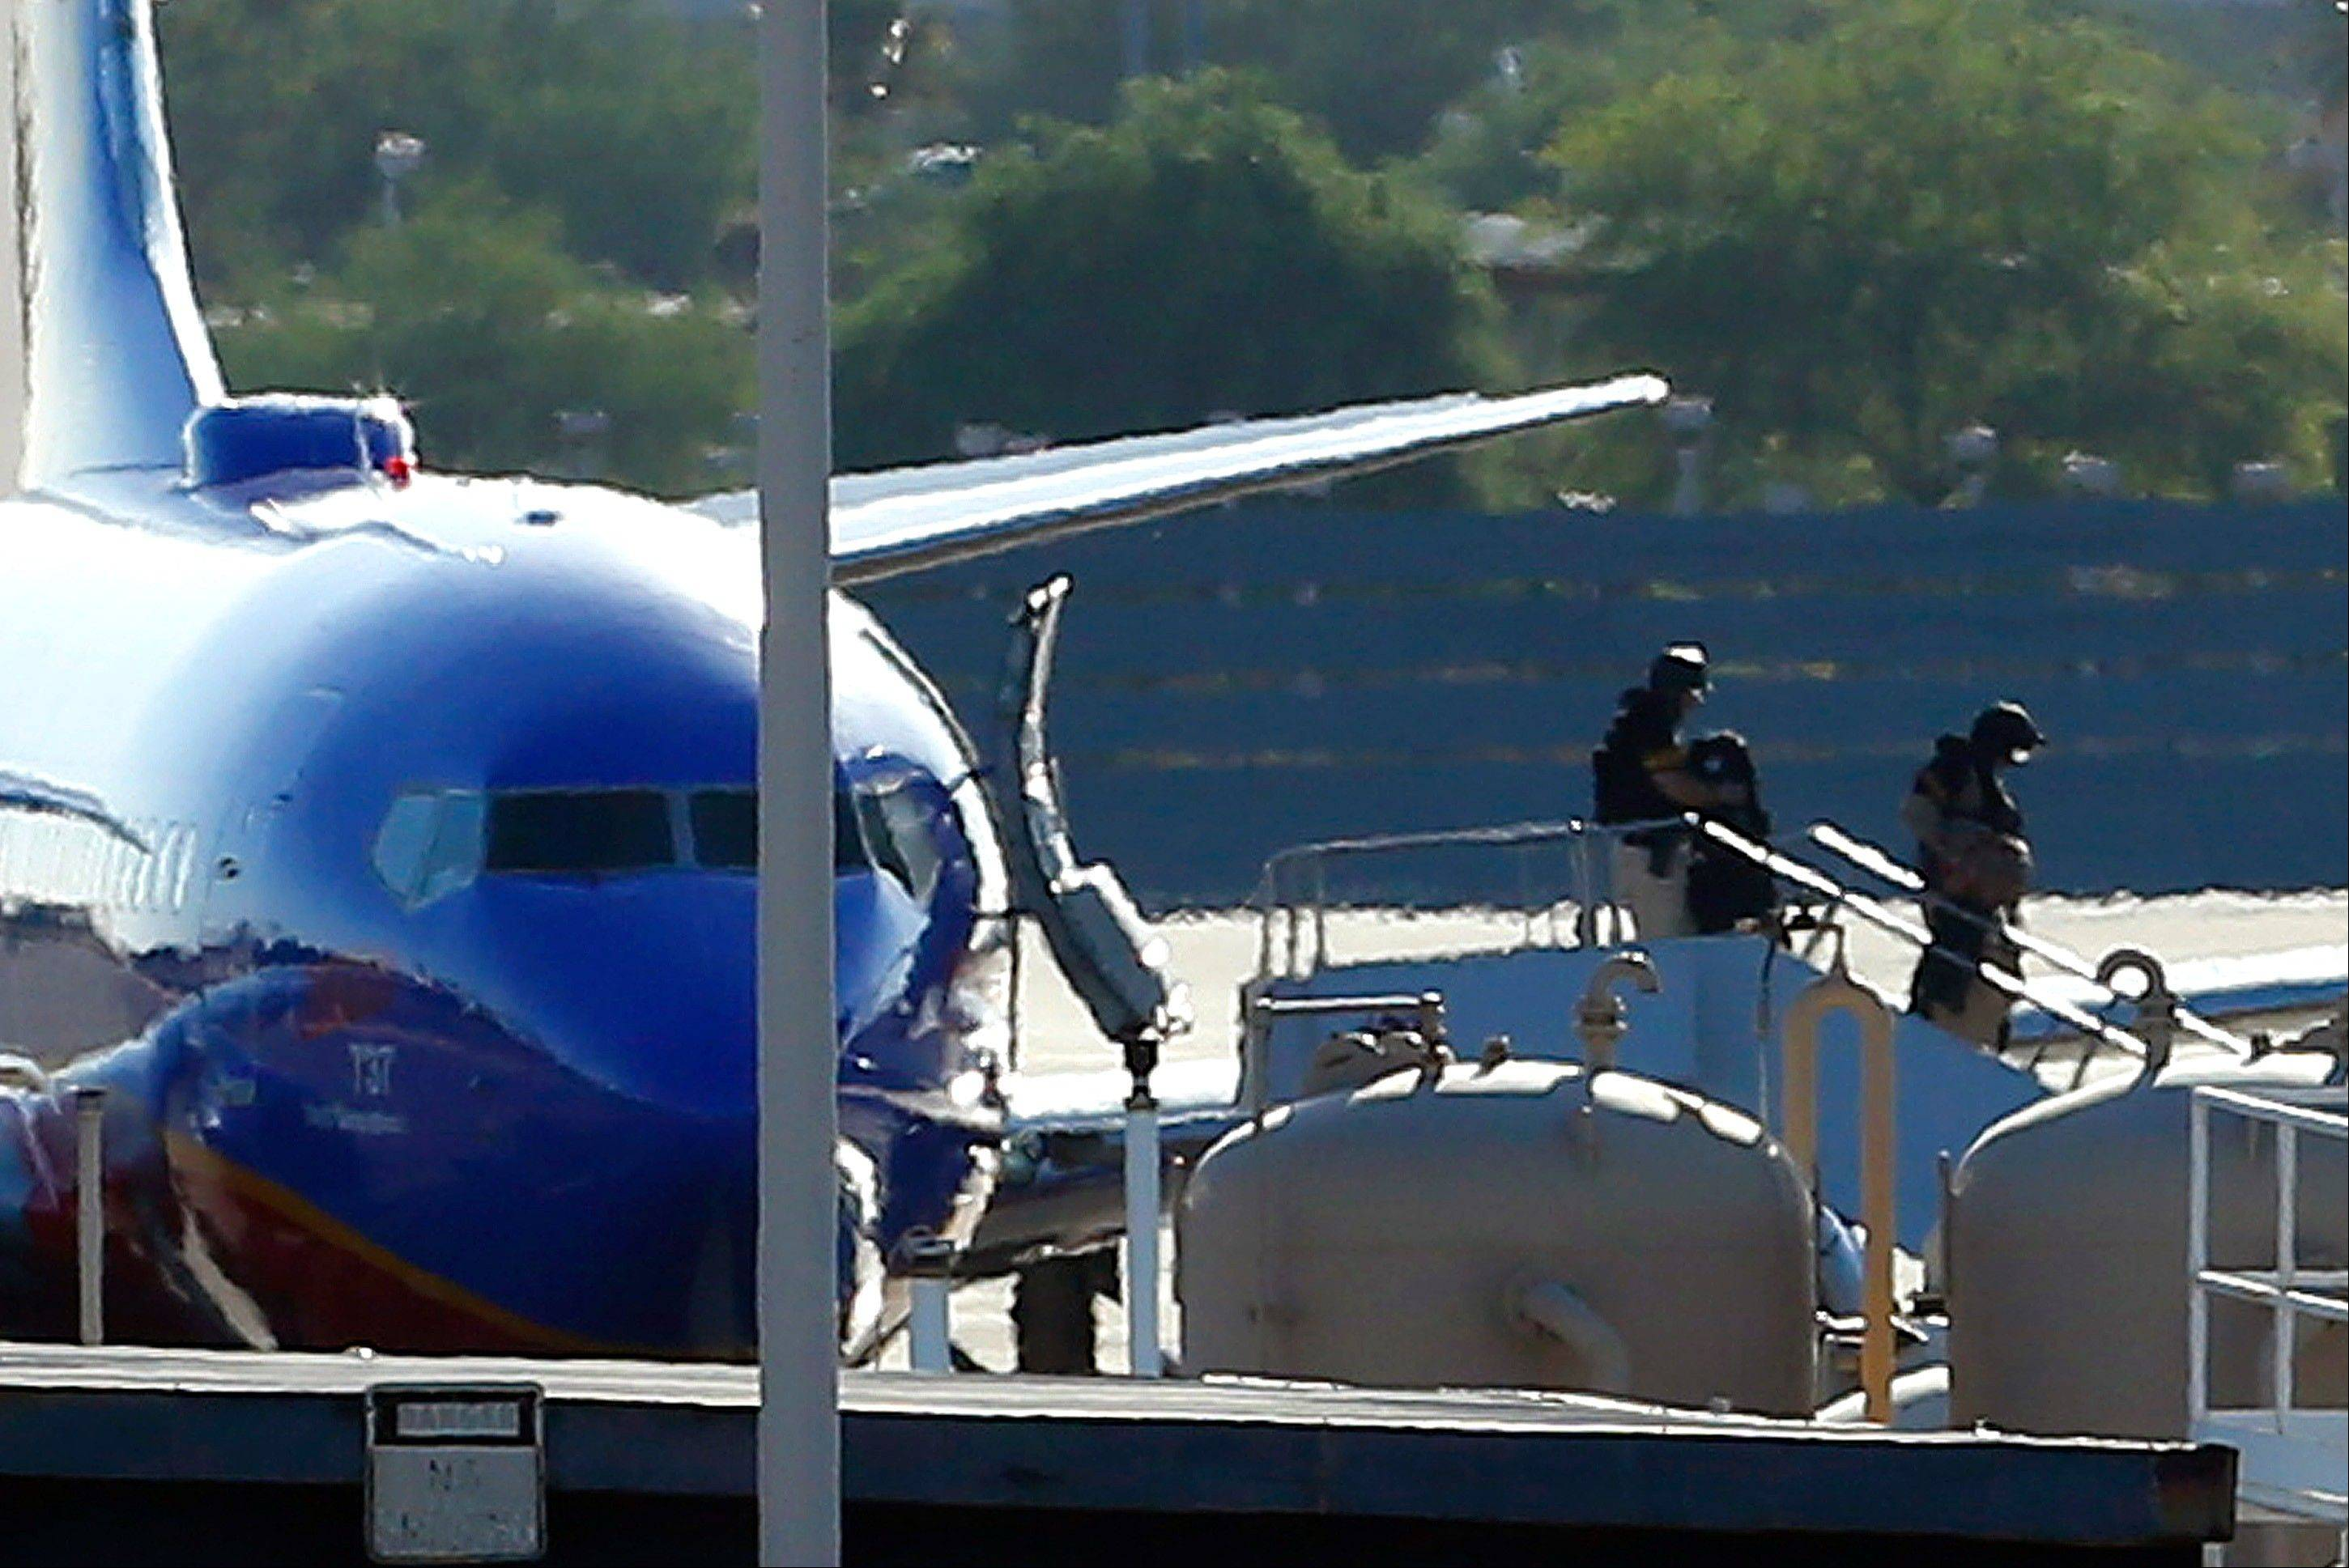 Members of the bomb squad walk off a Southwest Airlines plane on the ground at Phoenix Sky Harbor International Airport after the FBI says a �telephonic bomb threat� against a Southwest flight from Los Angeles to Texas led to the plane being diverted to Phoenix on Monday, June 10, 2013. Flight 2675 left Los Angeles International Airport at 2:12 p.m. and was heading to Austin before the threat was received by telephone. The plane landed safely at the Phoenix airport at about 3 p.m.